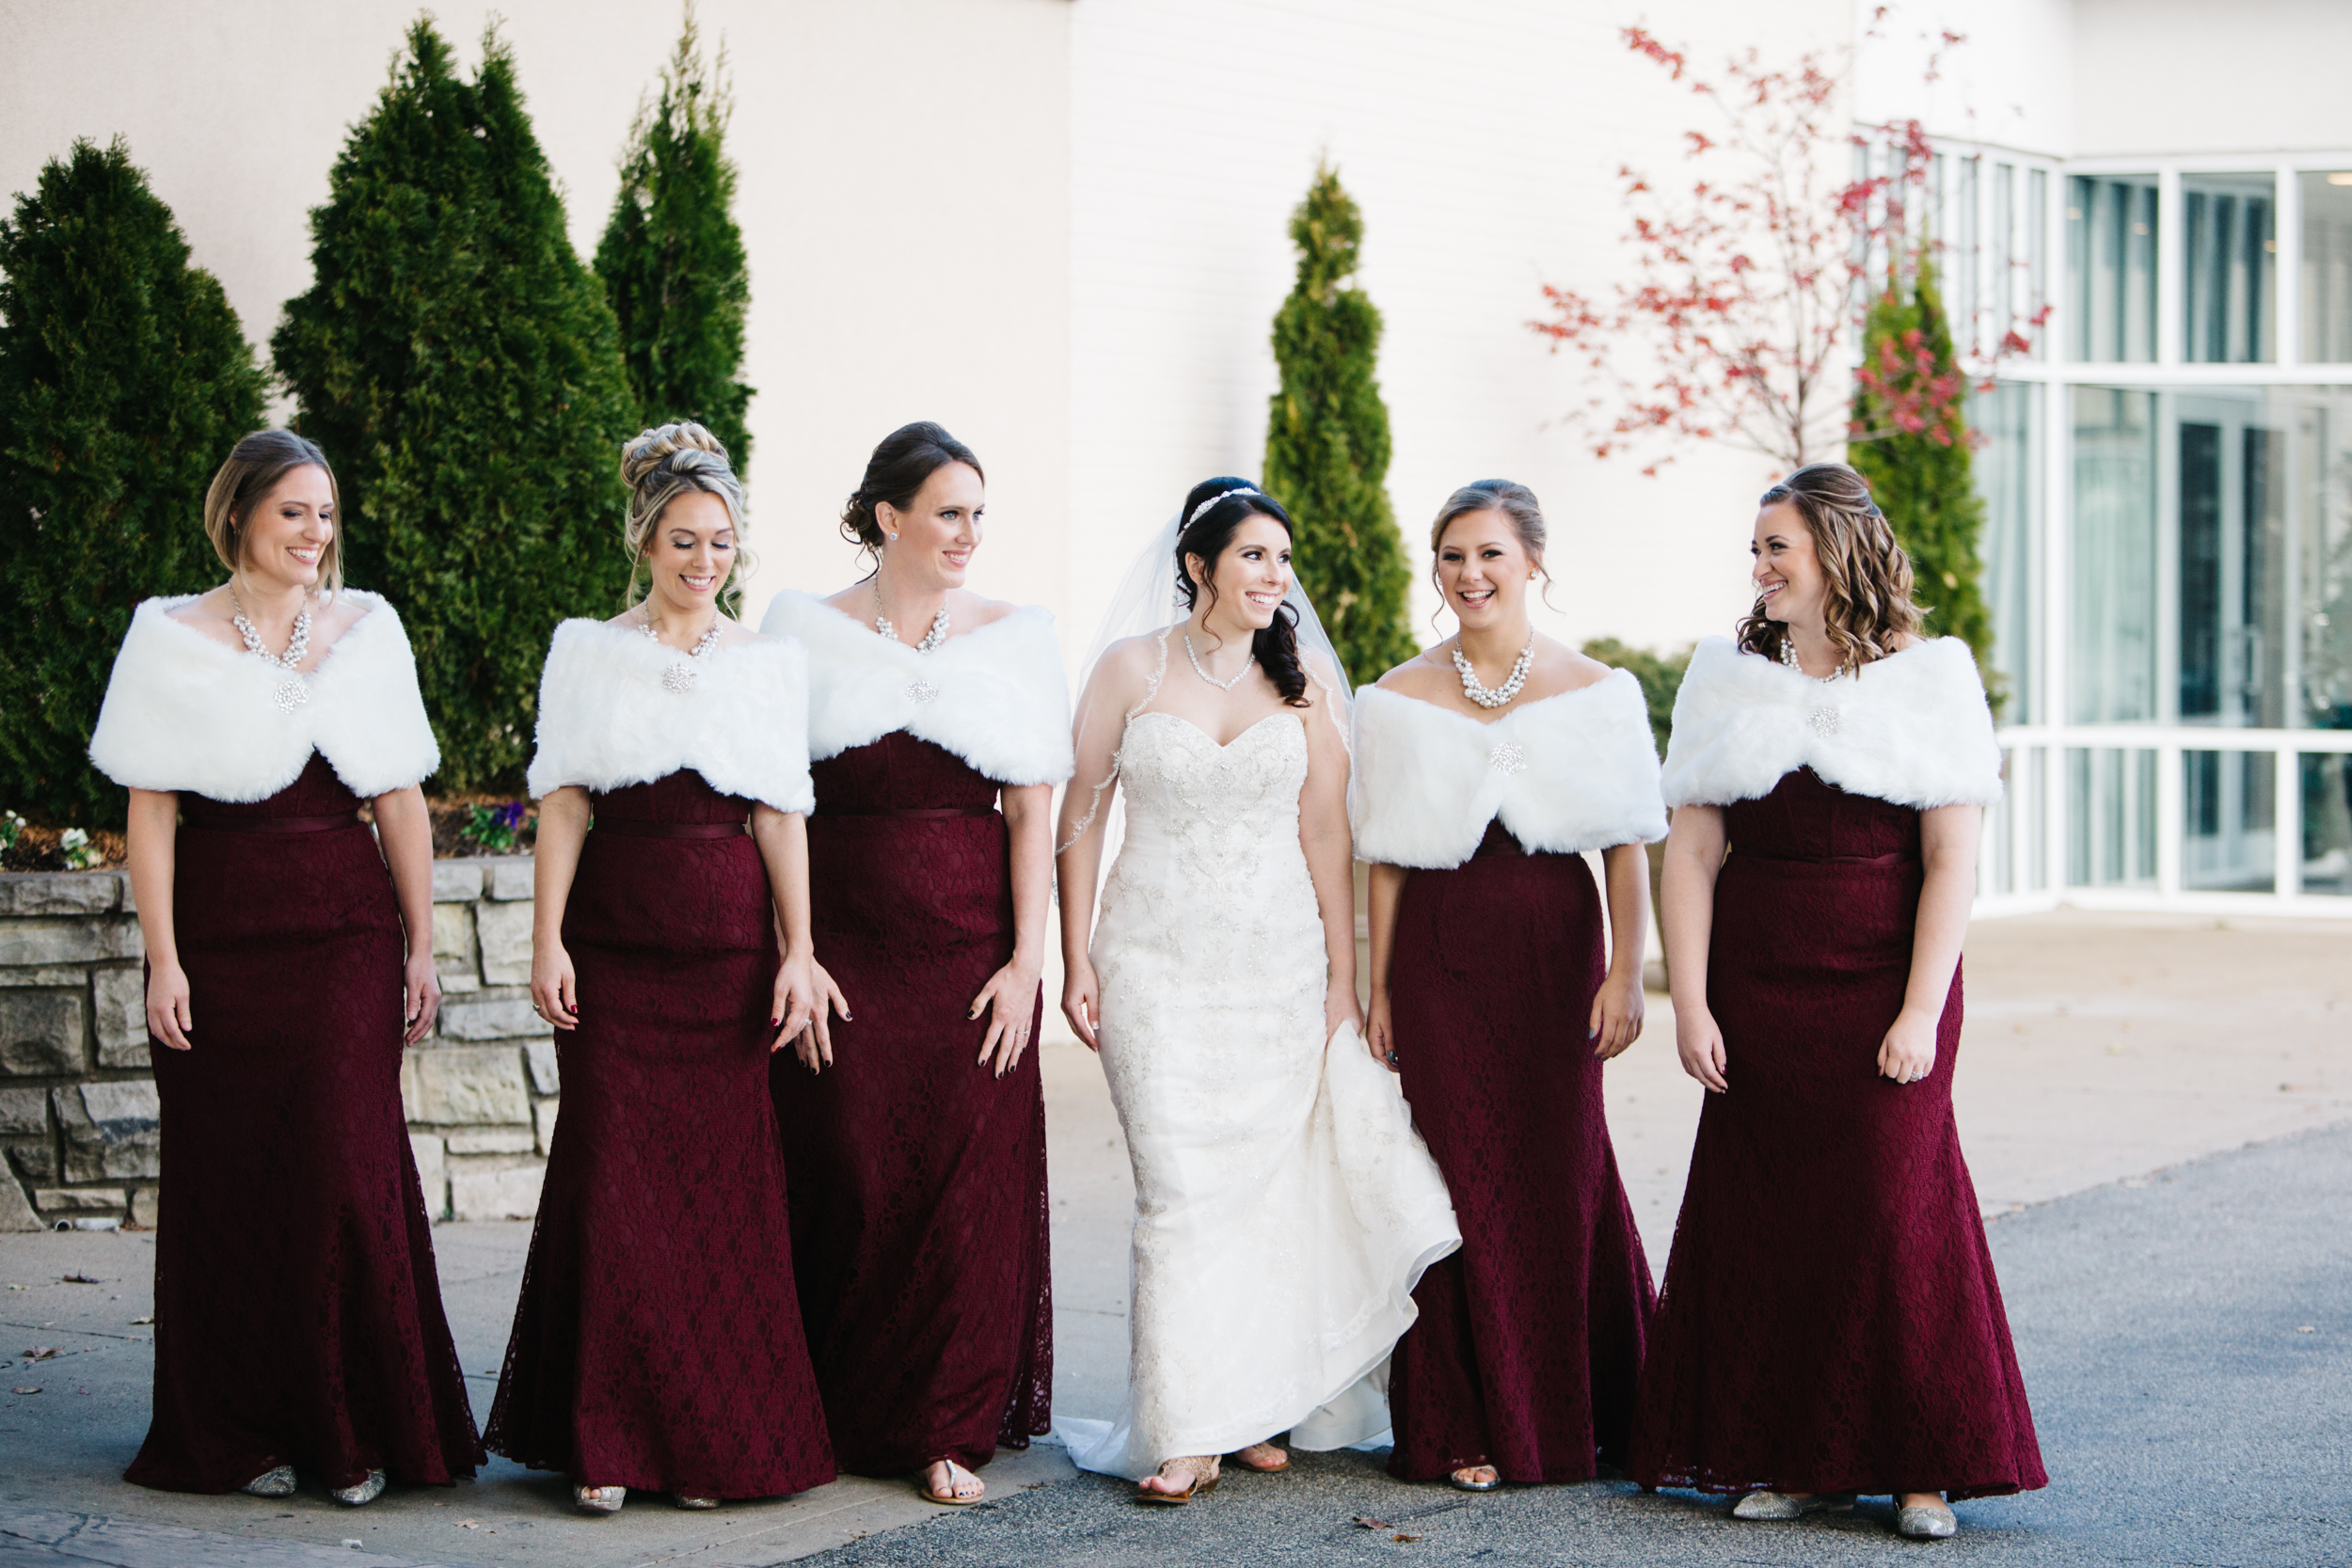 December wedding palette. Textured burgundy bridesmaid dresses with fur caplet.